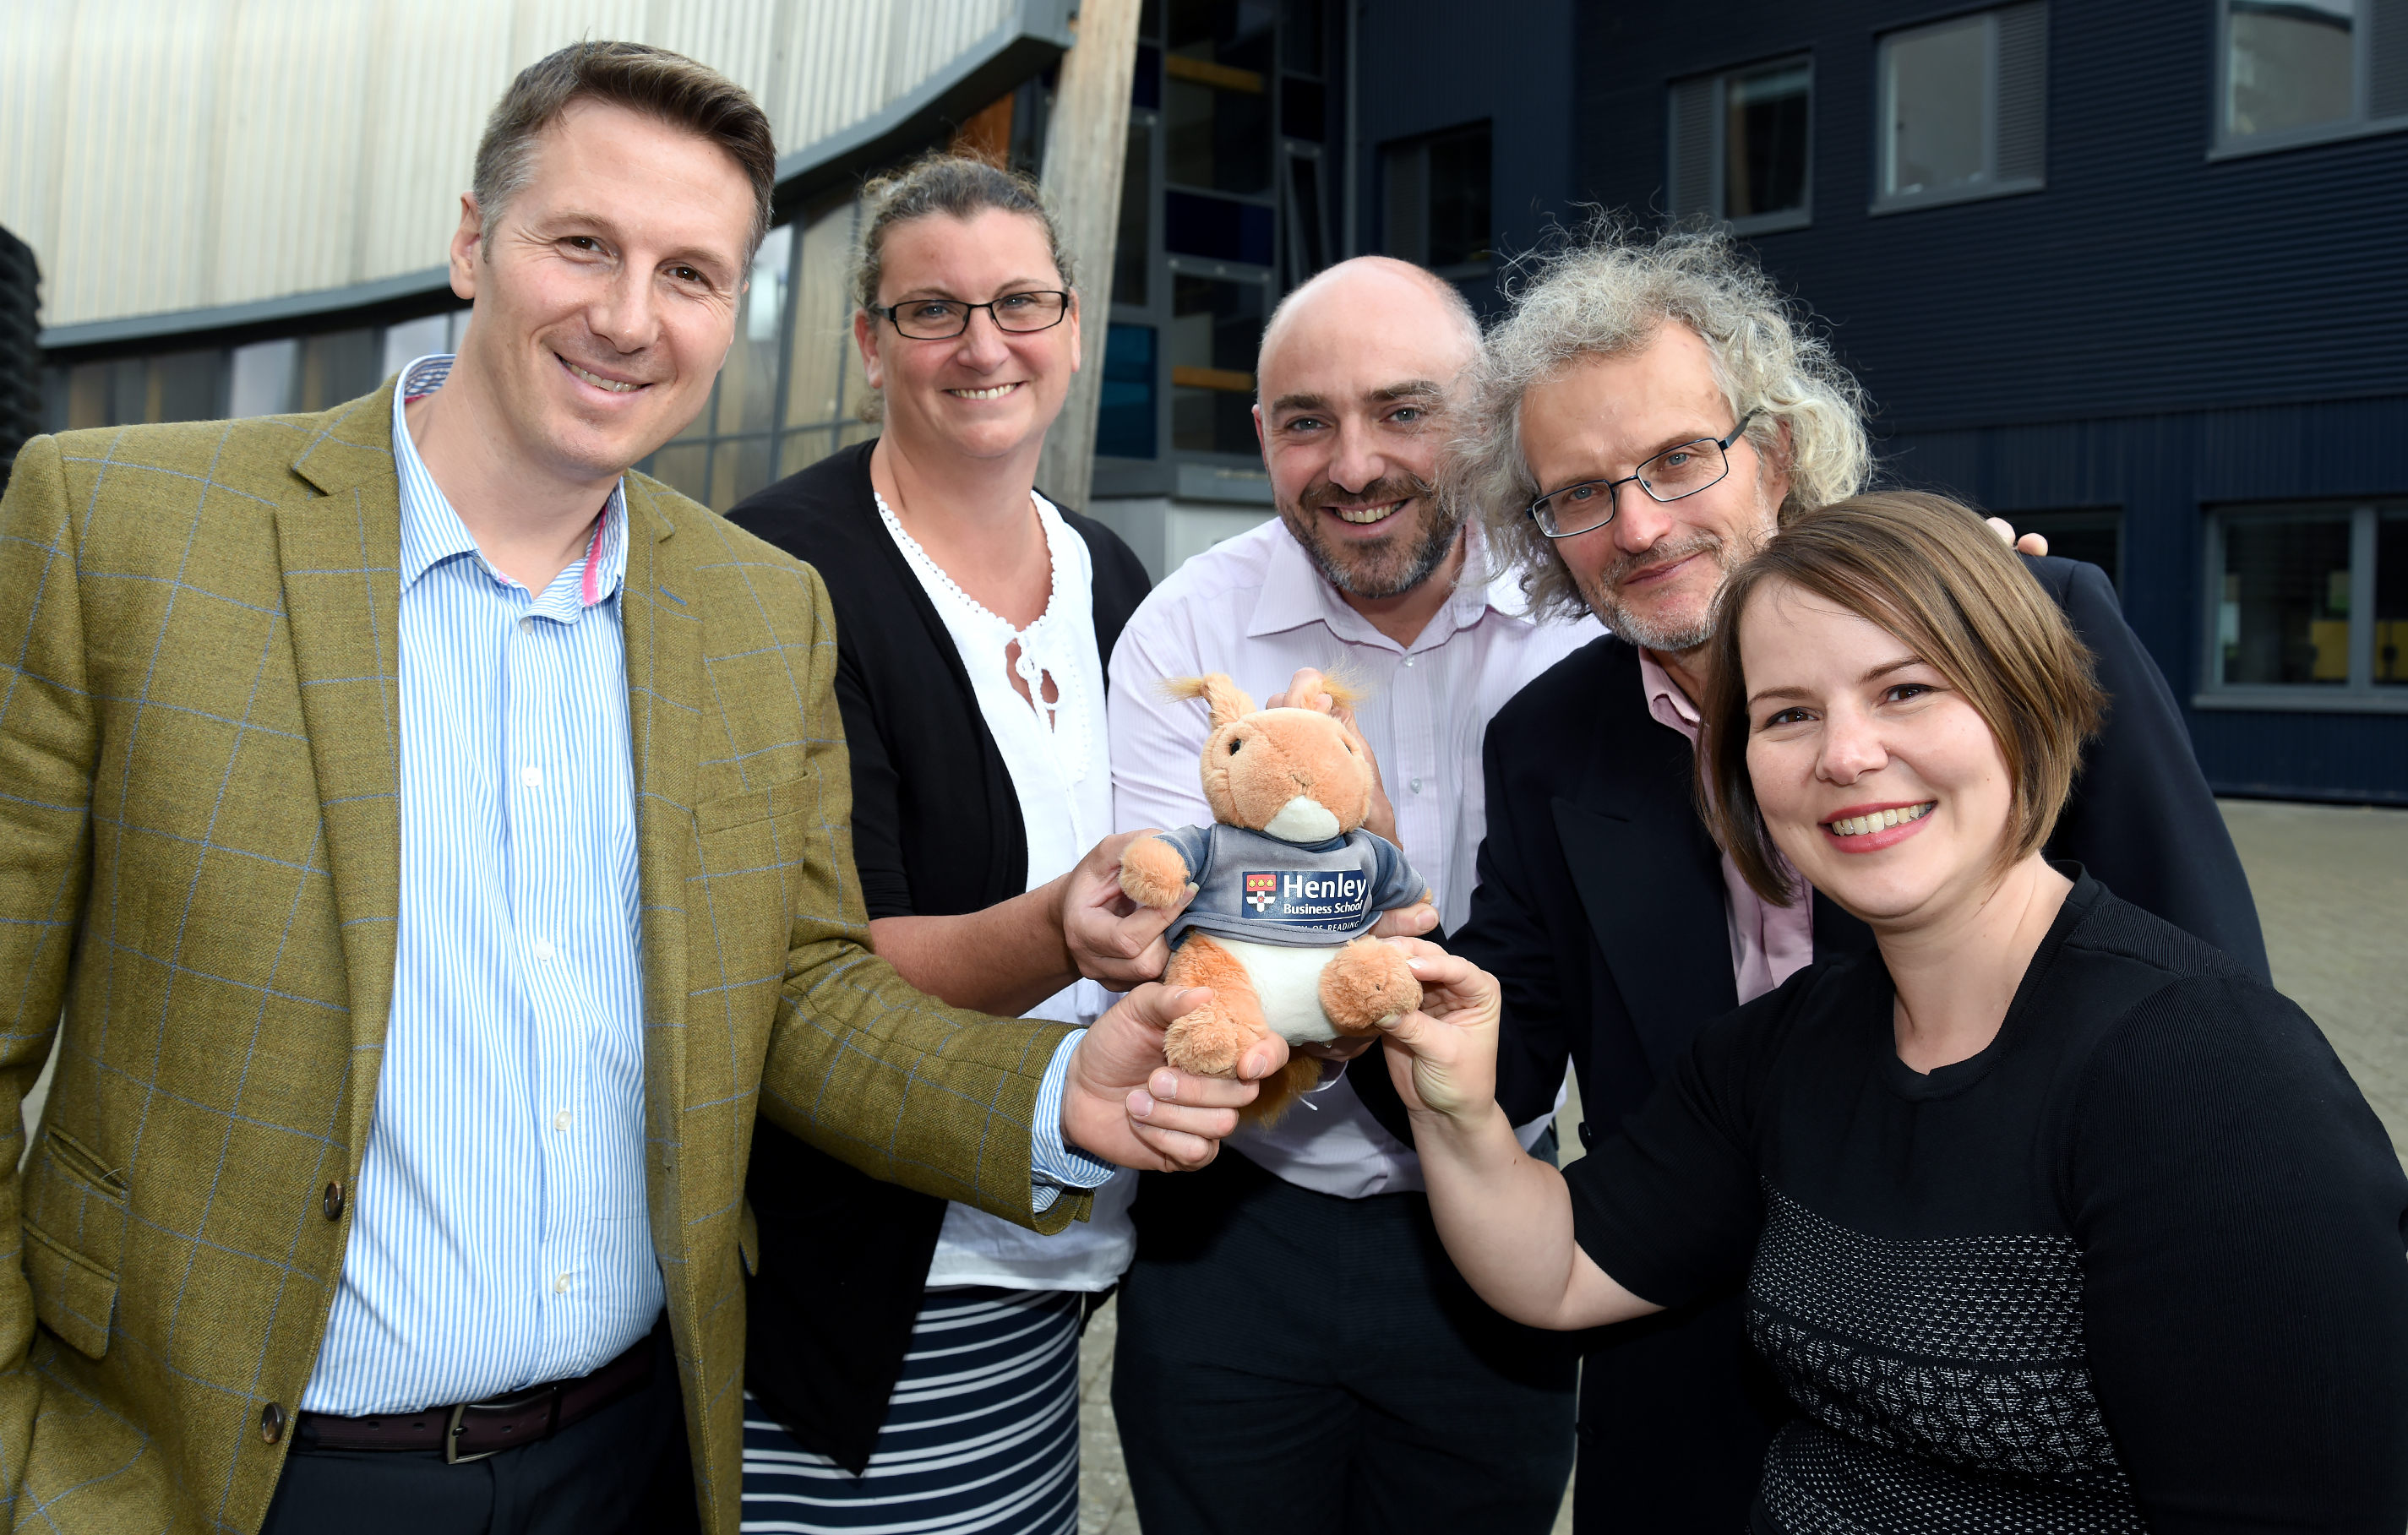 In pictures: Heads Together and Row research launch